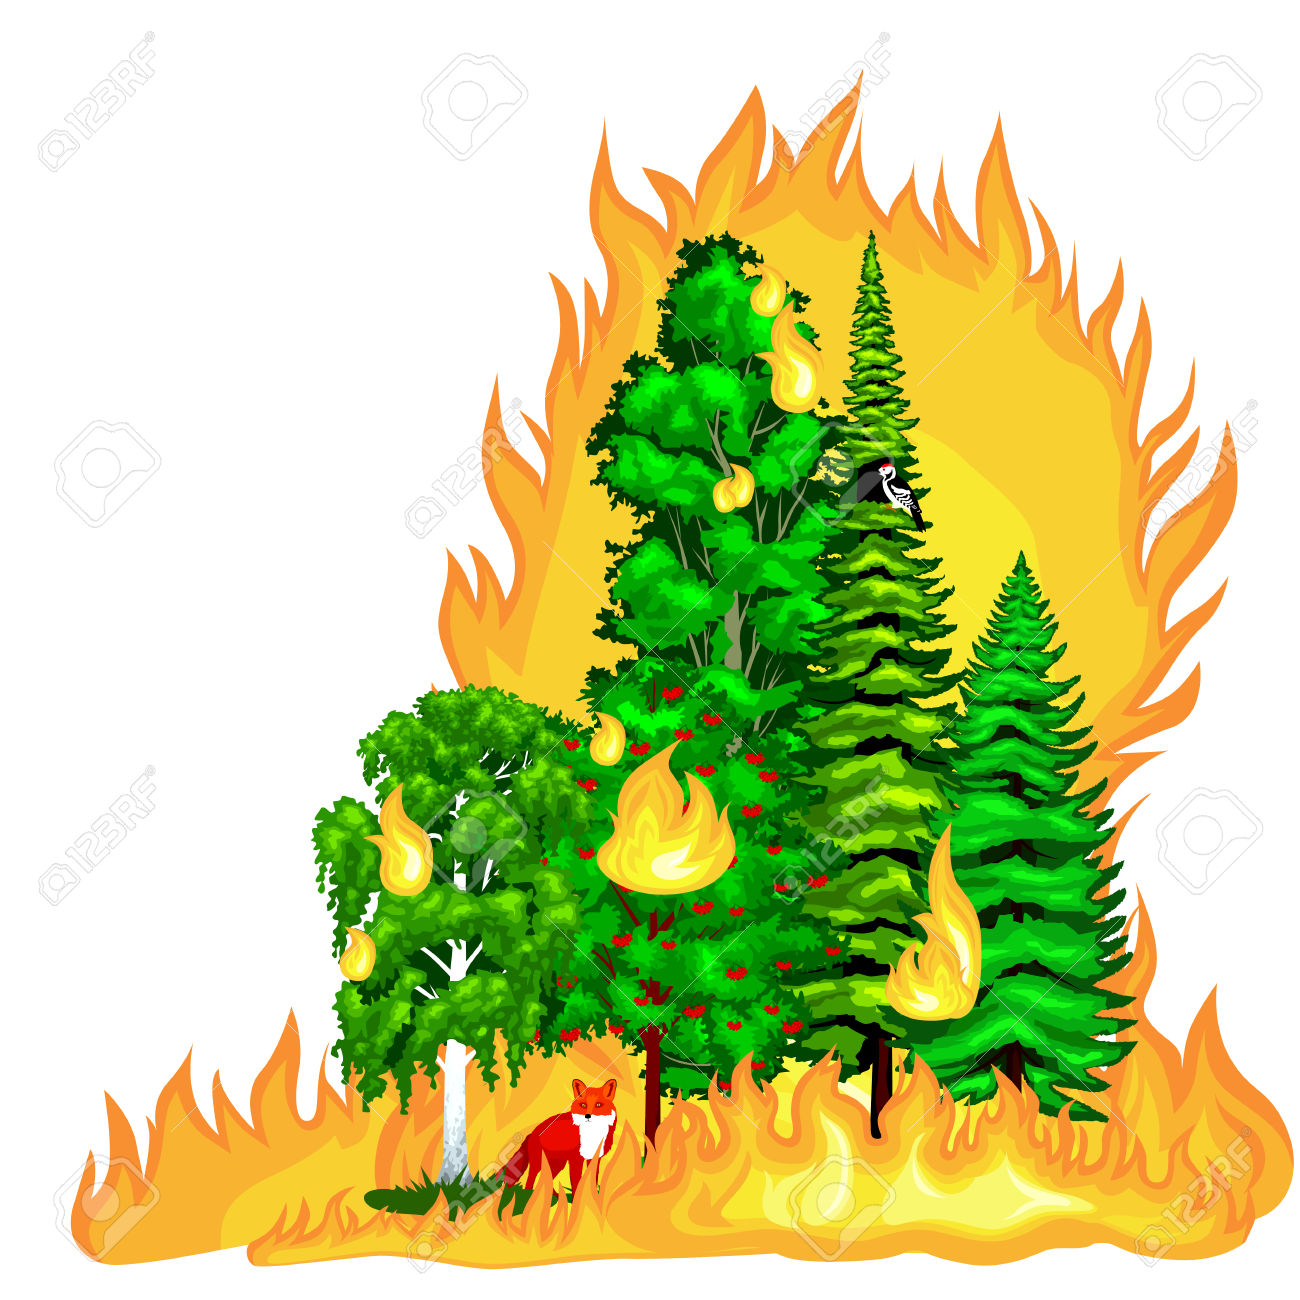 In landscape damage nature. Clipart fire forest fire